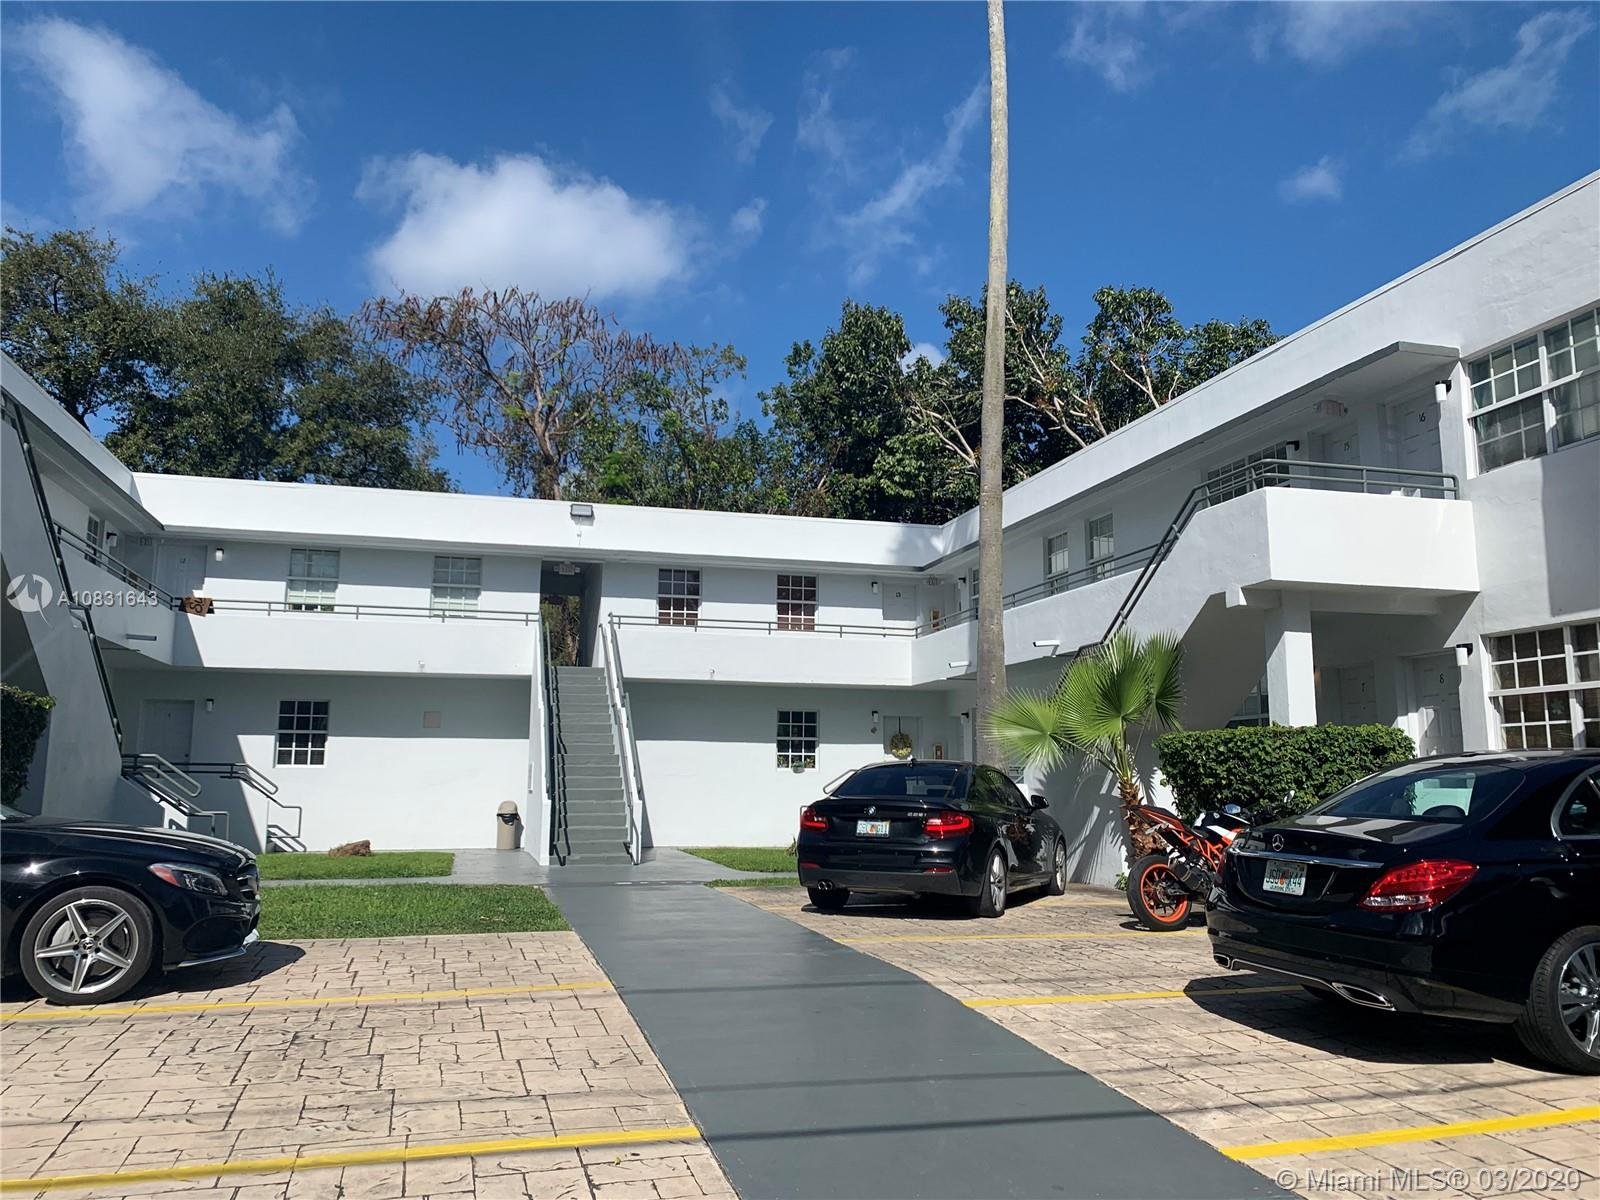 541 NE 62nd St # 13, Miami, Florida 33138, 1 Bedroom Bedrooms, ,1 BathroomBathrooms,Residential,For Sale,541 NE 62nd St # 13,A10831643